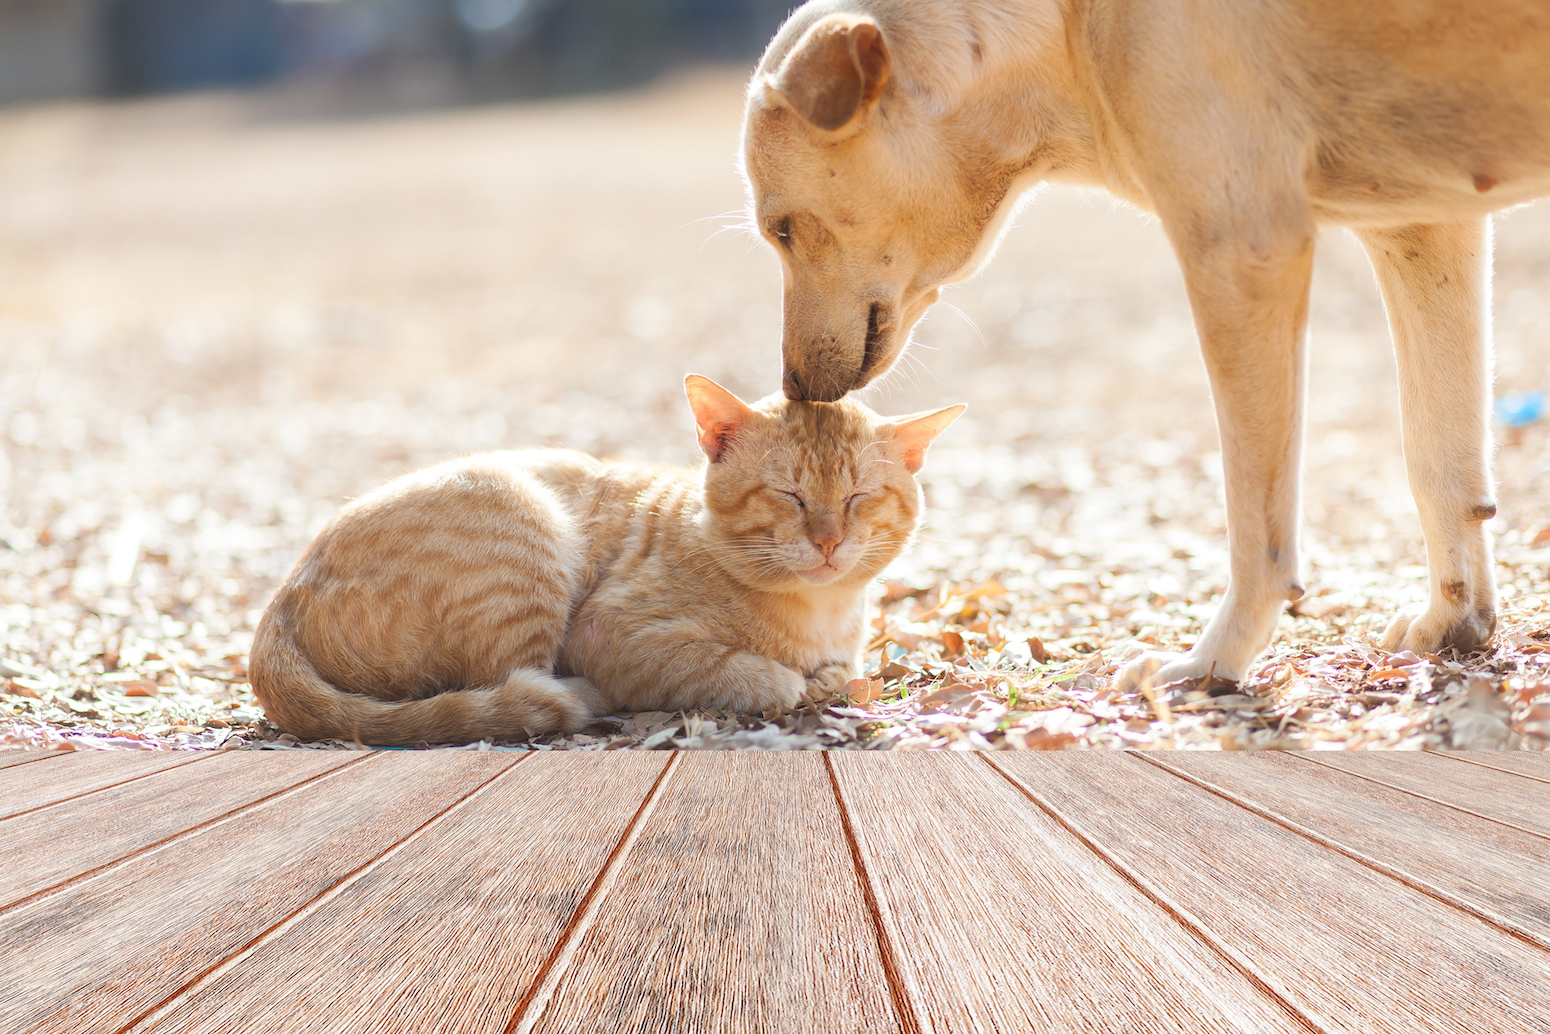 While it might seem that dogs hold all the power in a household, a new study reveals that cats are actually in charge.